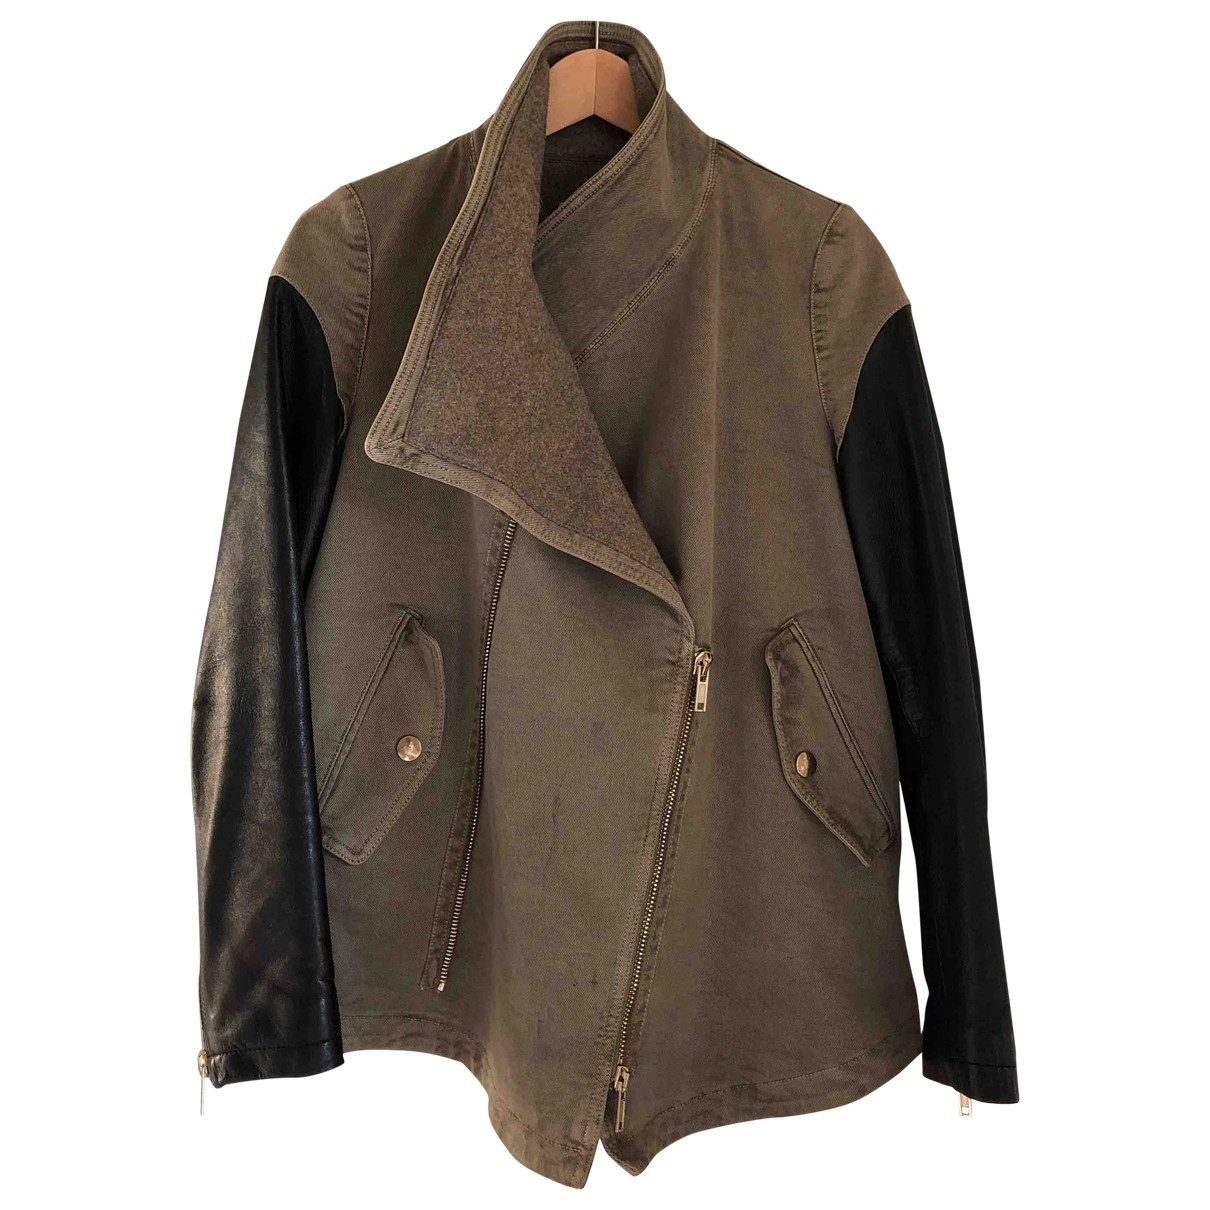 Givenchy \N Jacke in  Khaki Wolle